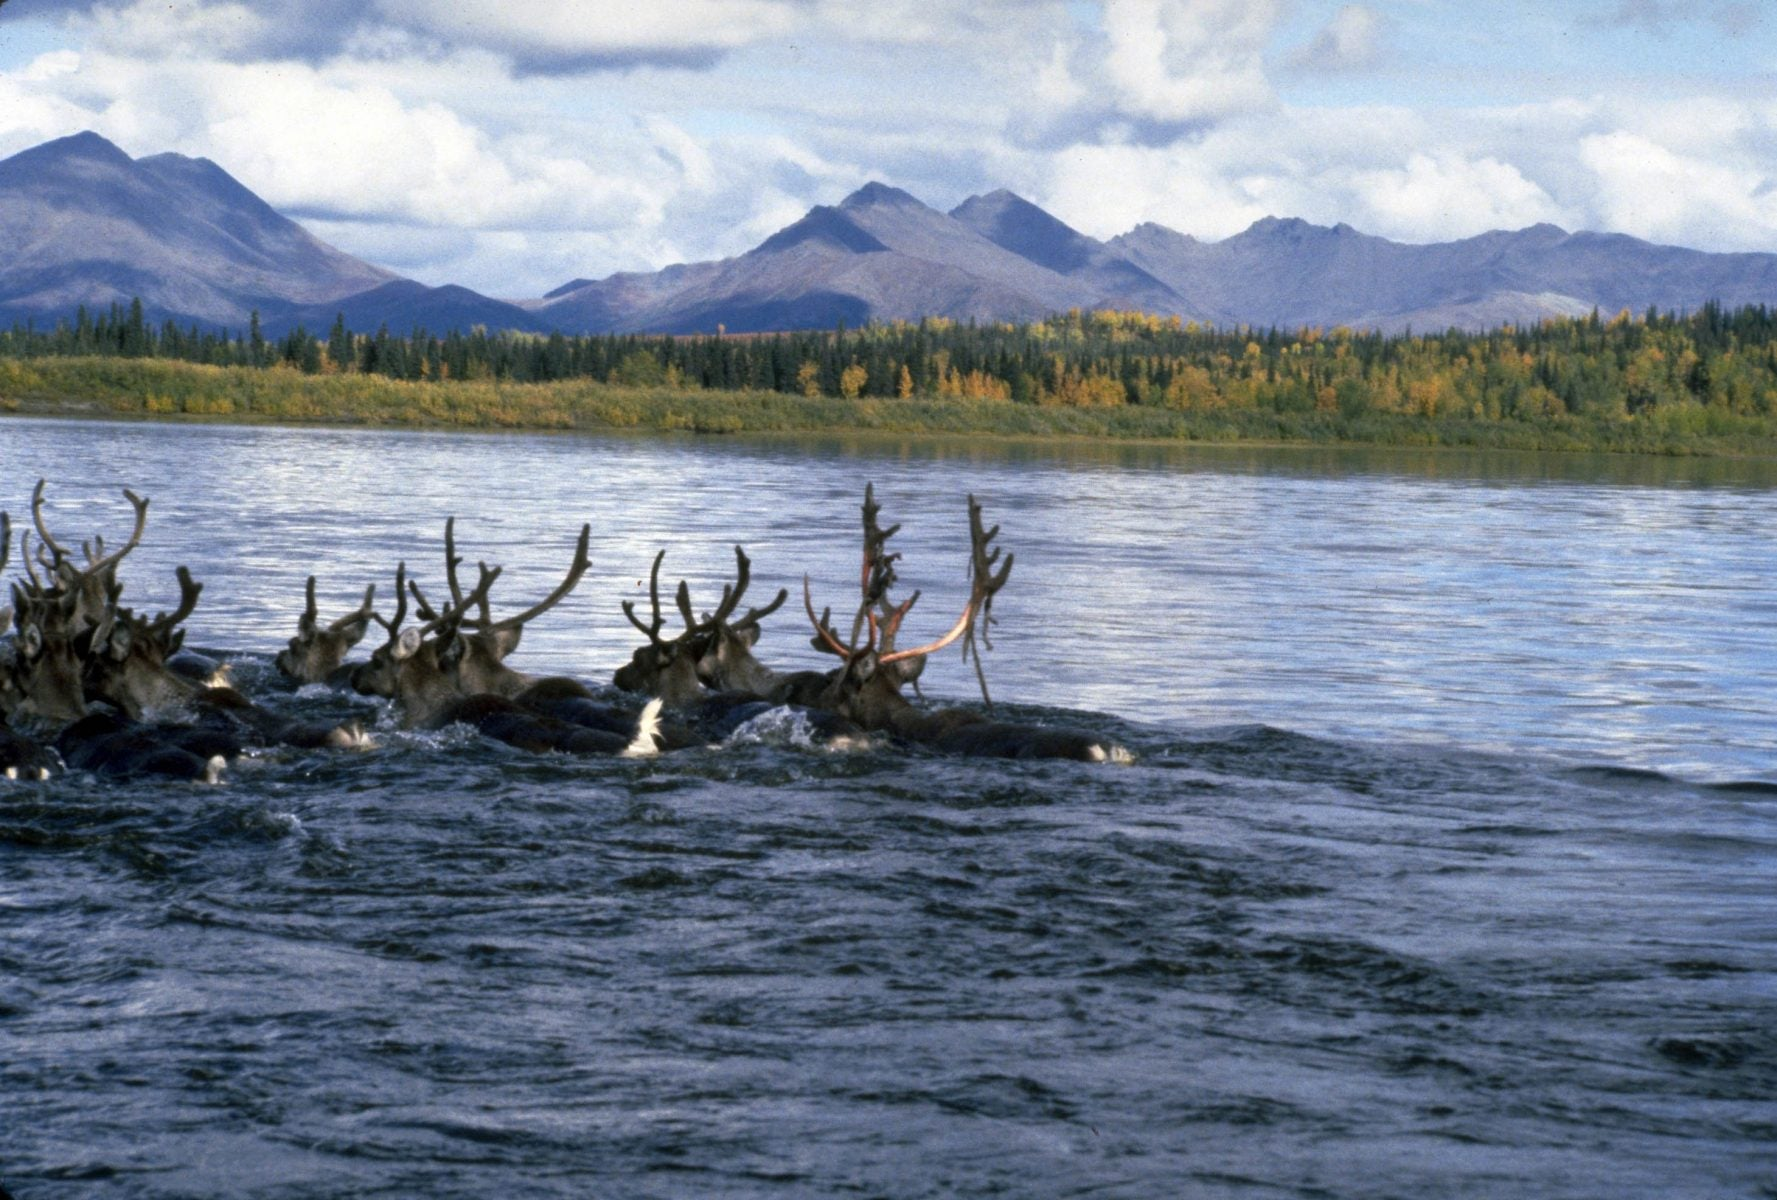 12 caribou with velvet on their antlers swim across a river with mountains and green and gold trees in the background